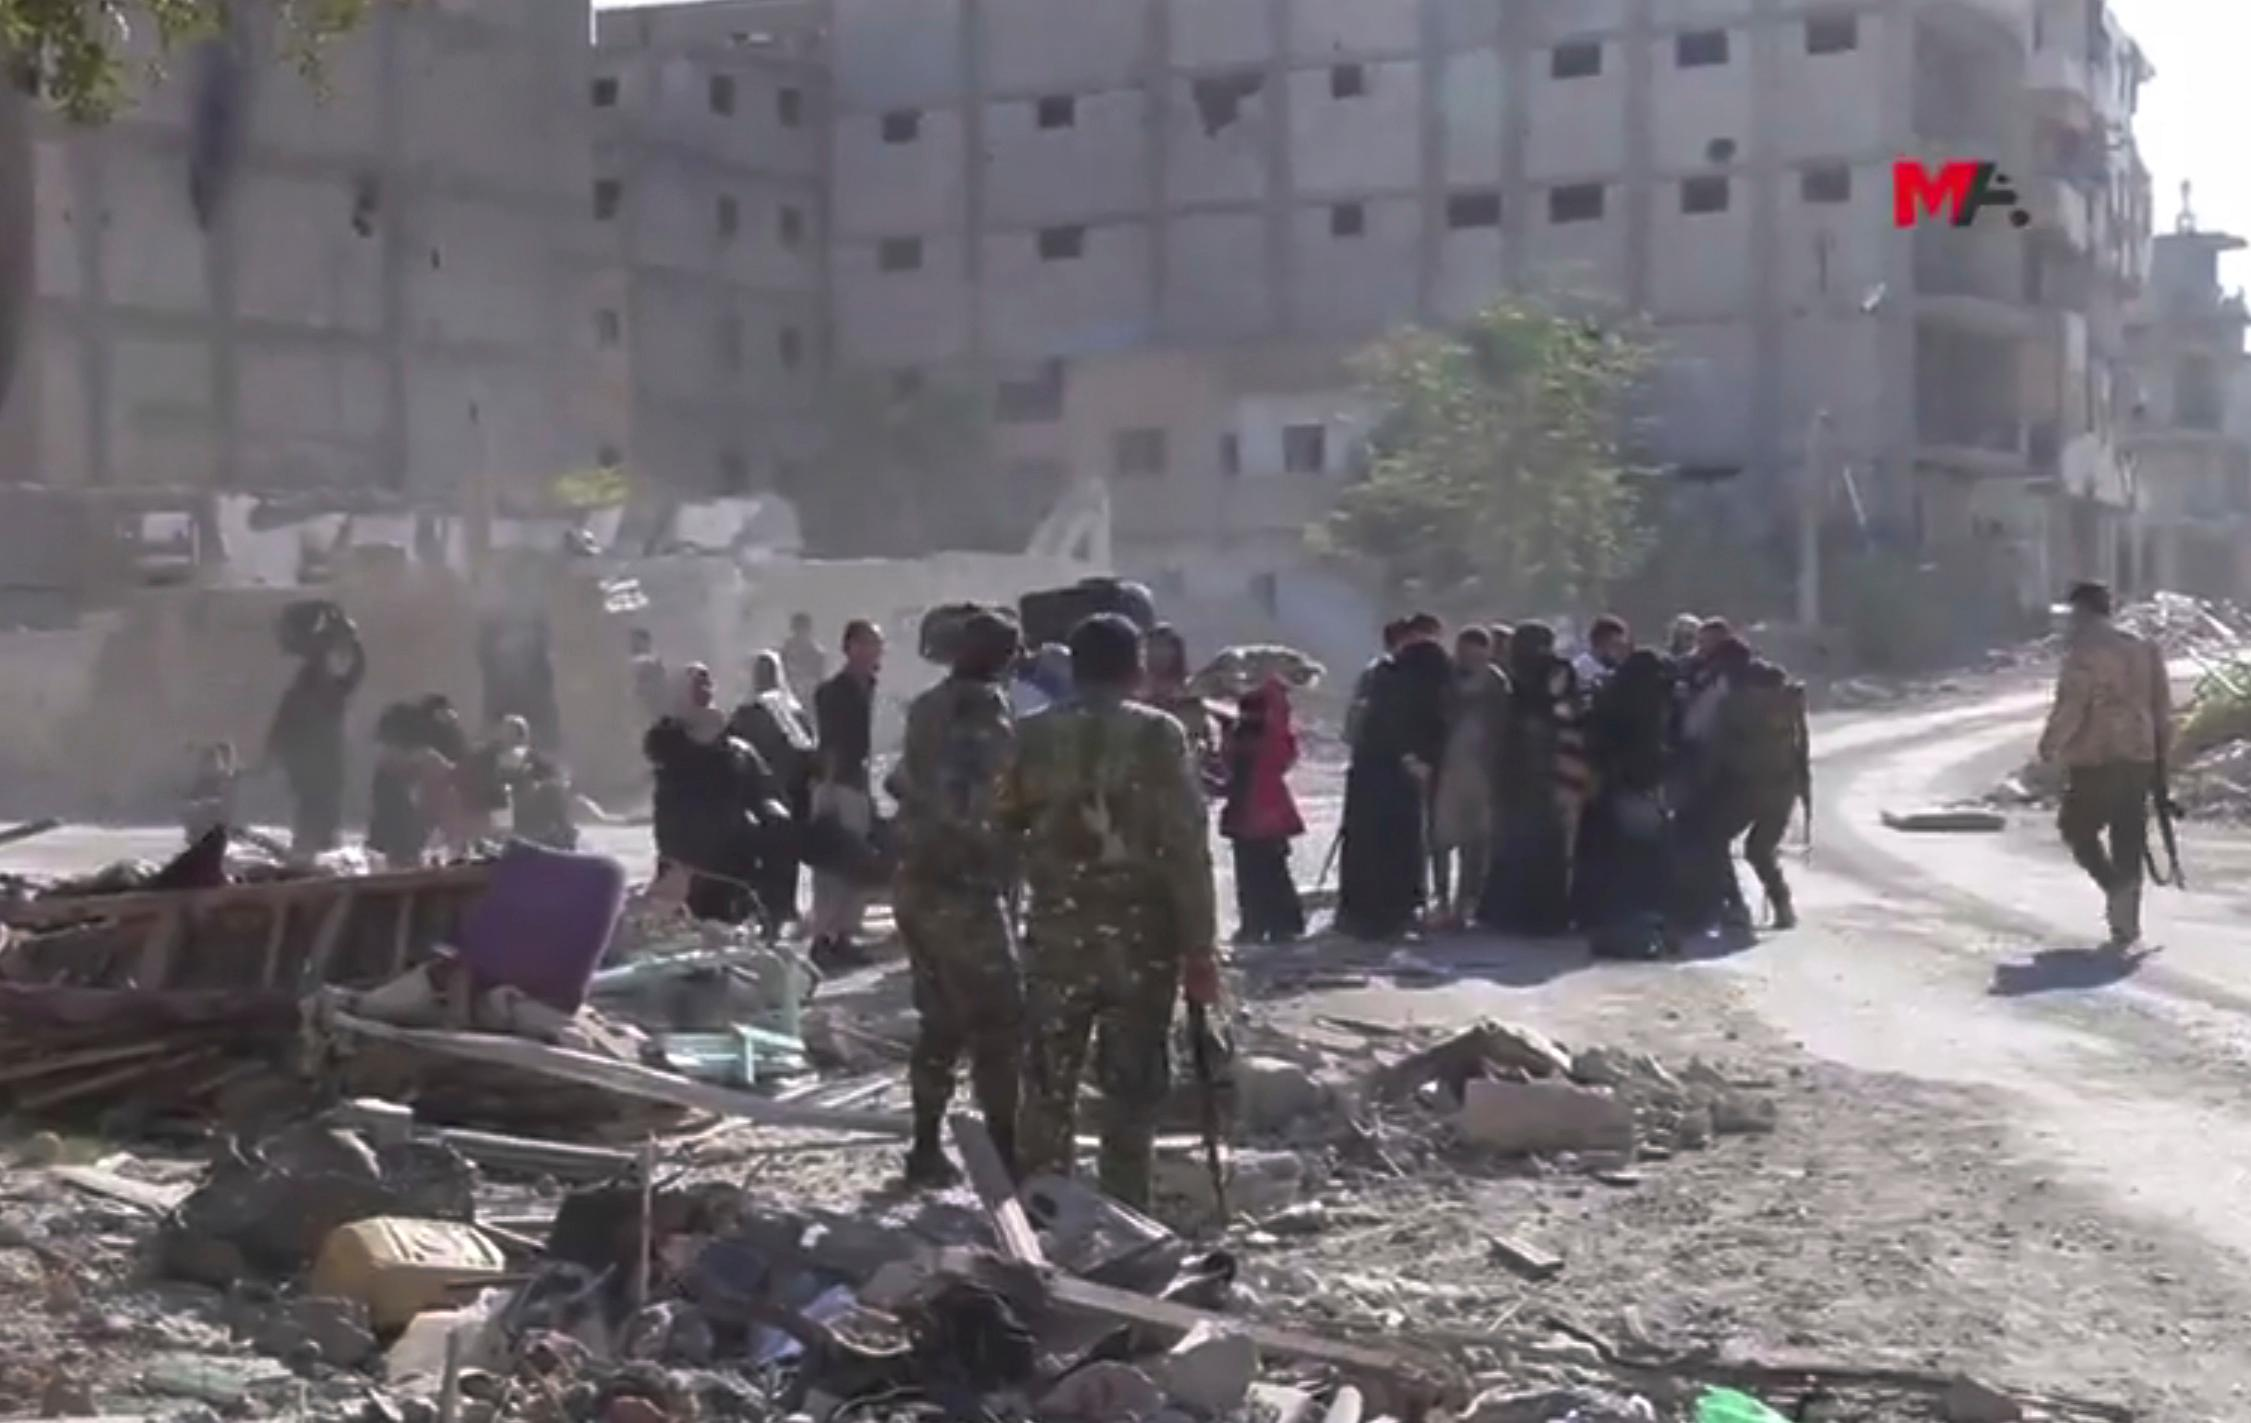 This frame grab from a video provided on Friday, Oct. 13, 2017 by Turkey-based Kurdish Mezopotamya agency media outlet that is consistent with independent AP reporting, shows U.S.-backed Syrian Democratic Forces (SDF) fighters, stand around Syrian civilians who fled from the areas that still controlled by the Islamic State militants, in Raqqa, Syria. Scores of civilians including women and children are fleeing the last few remaining neighborhoods held by the Islamic State group in Syria's northern city of Raqqa, ahead of an anticipated final push by U.S.-backed fighters seeking to liberate the city. (Mezopotamya Agency, via AP)